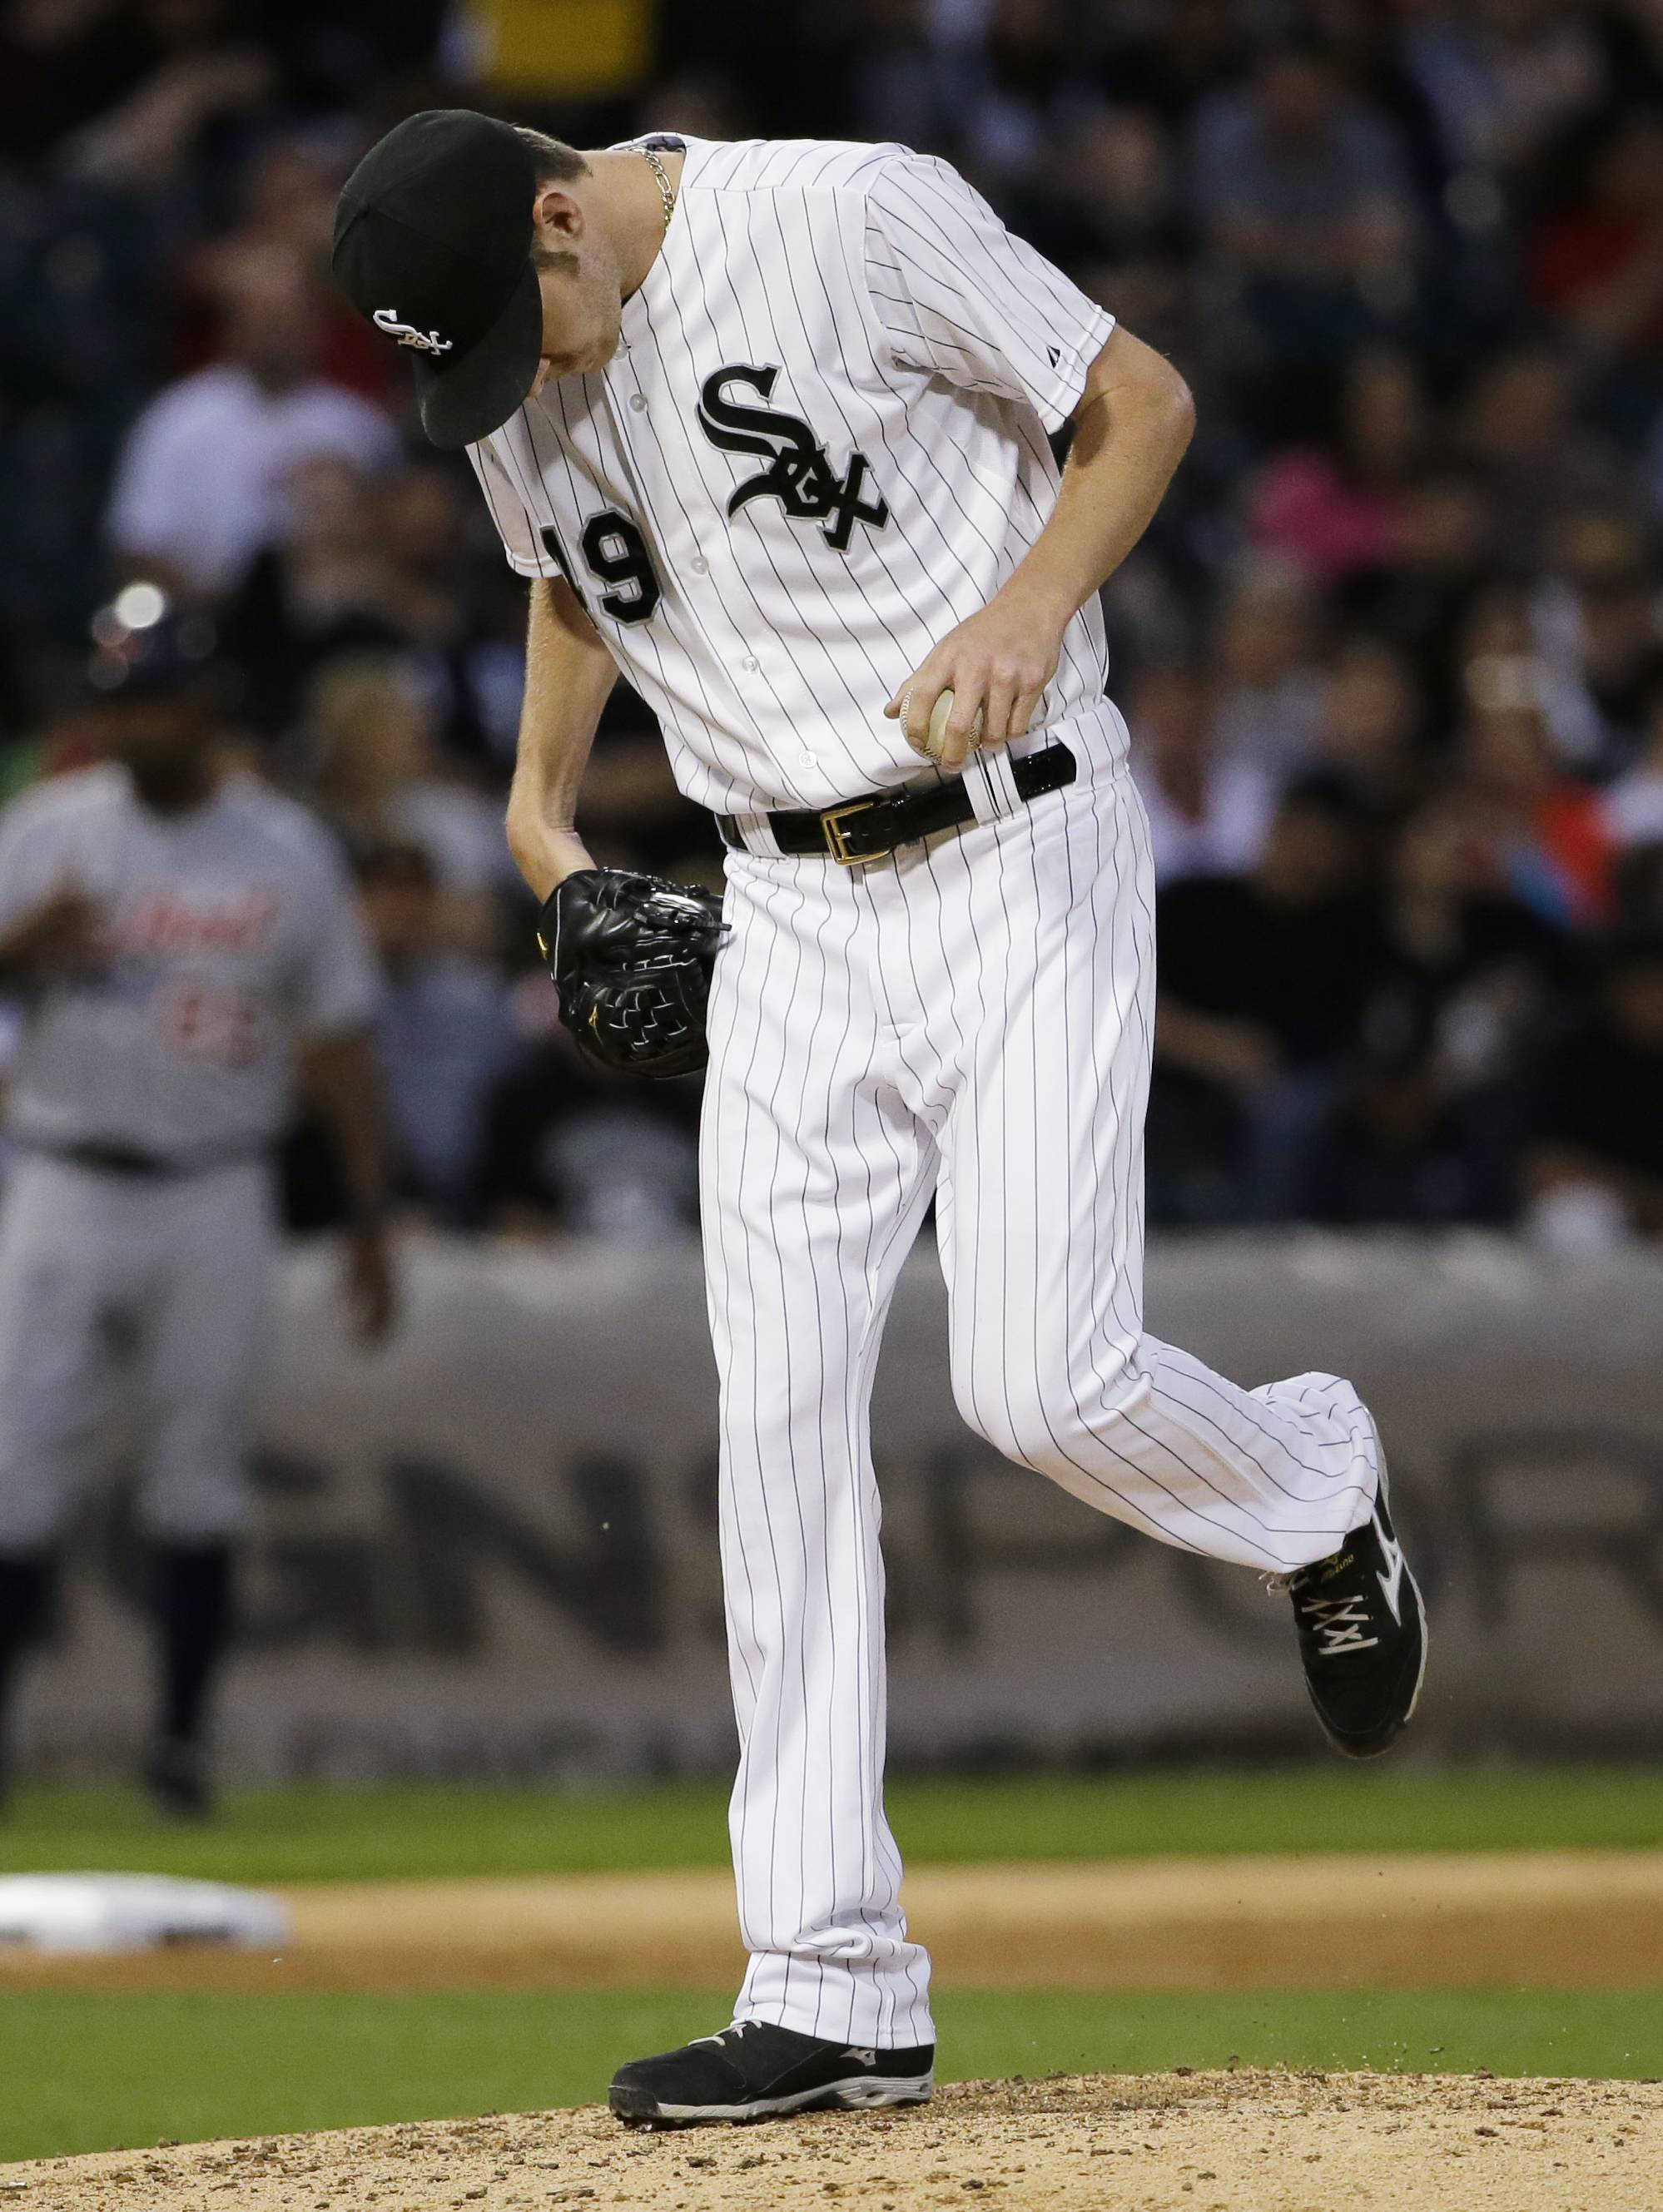 White Sox starter Chris Sale kicks the dirt after Detroit Tigers' Victor Martinez hit a solo home run during the fifth inning Thursday at U.S. Cellular Field.